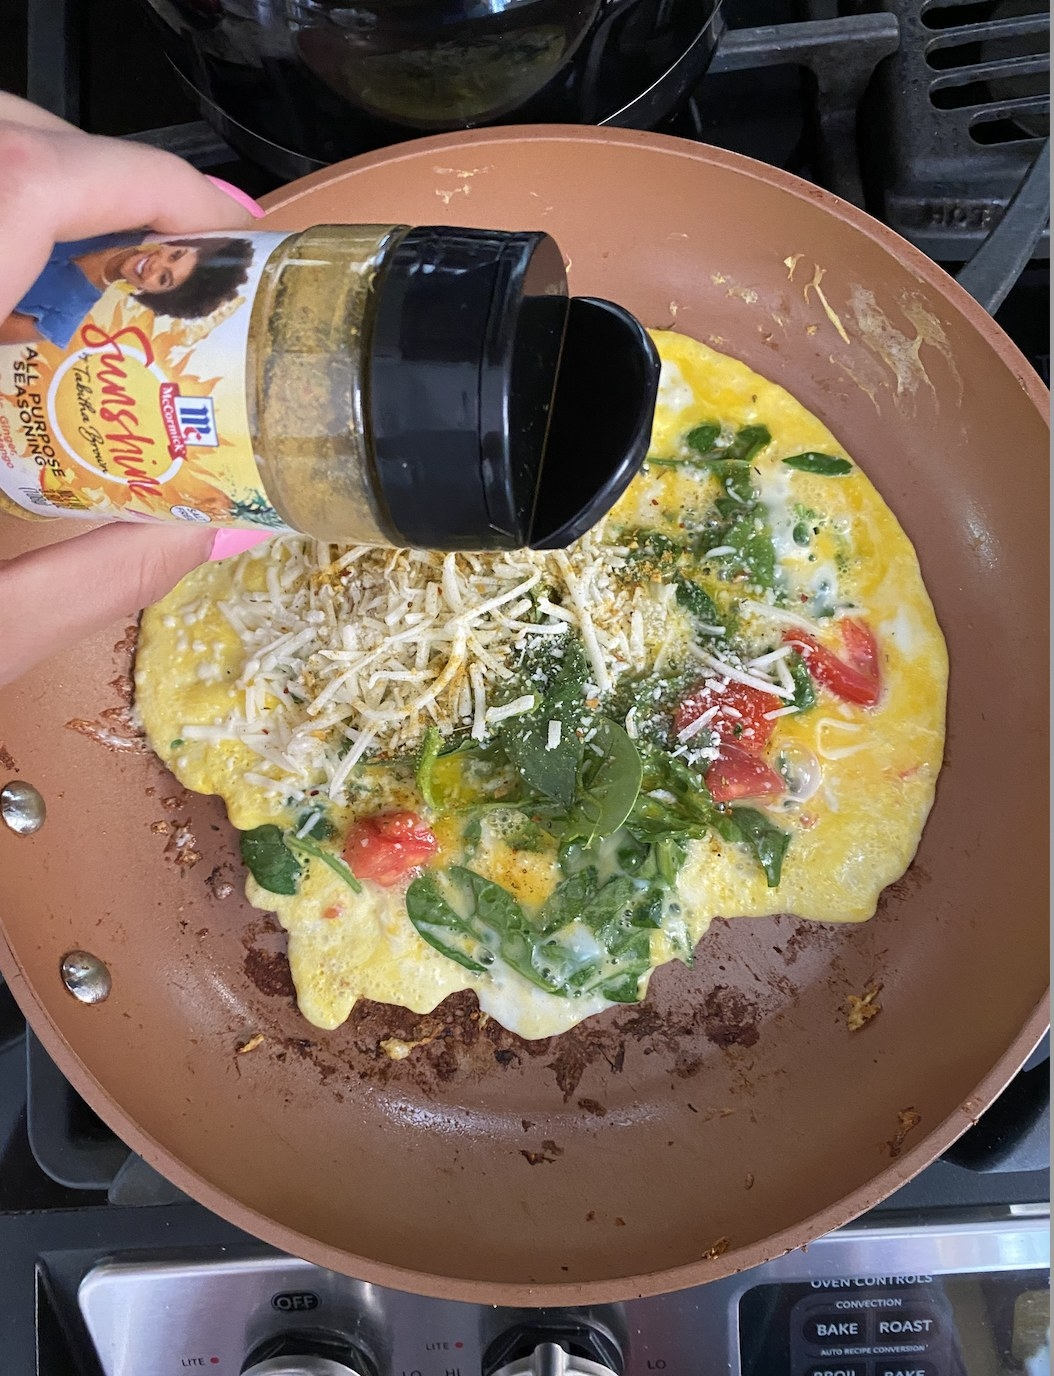 The author cooking an omelet